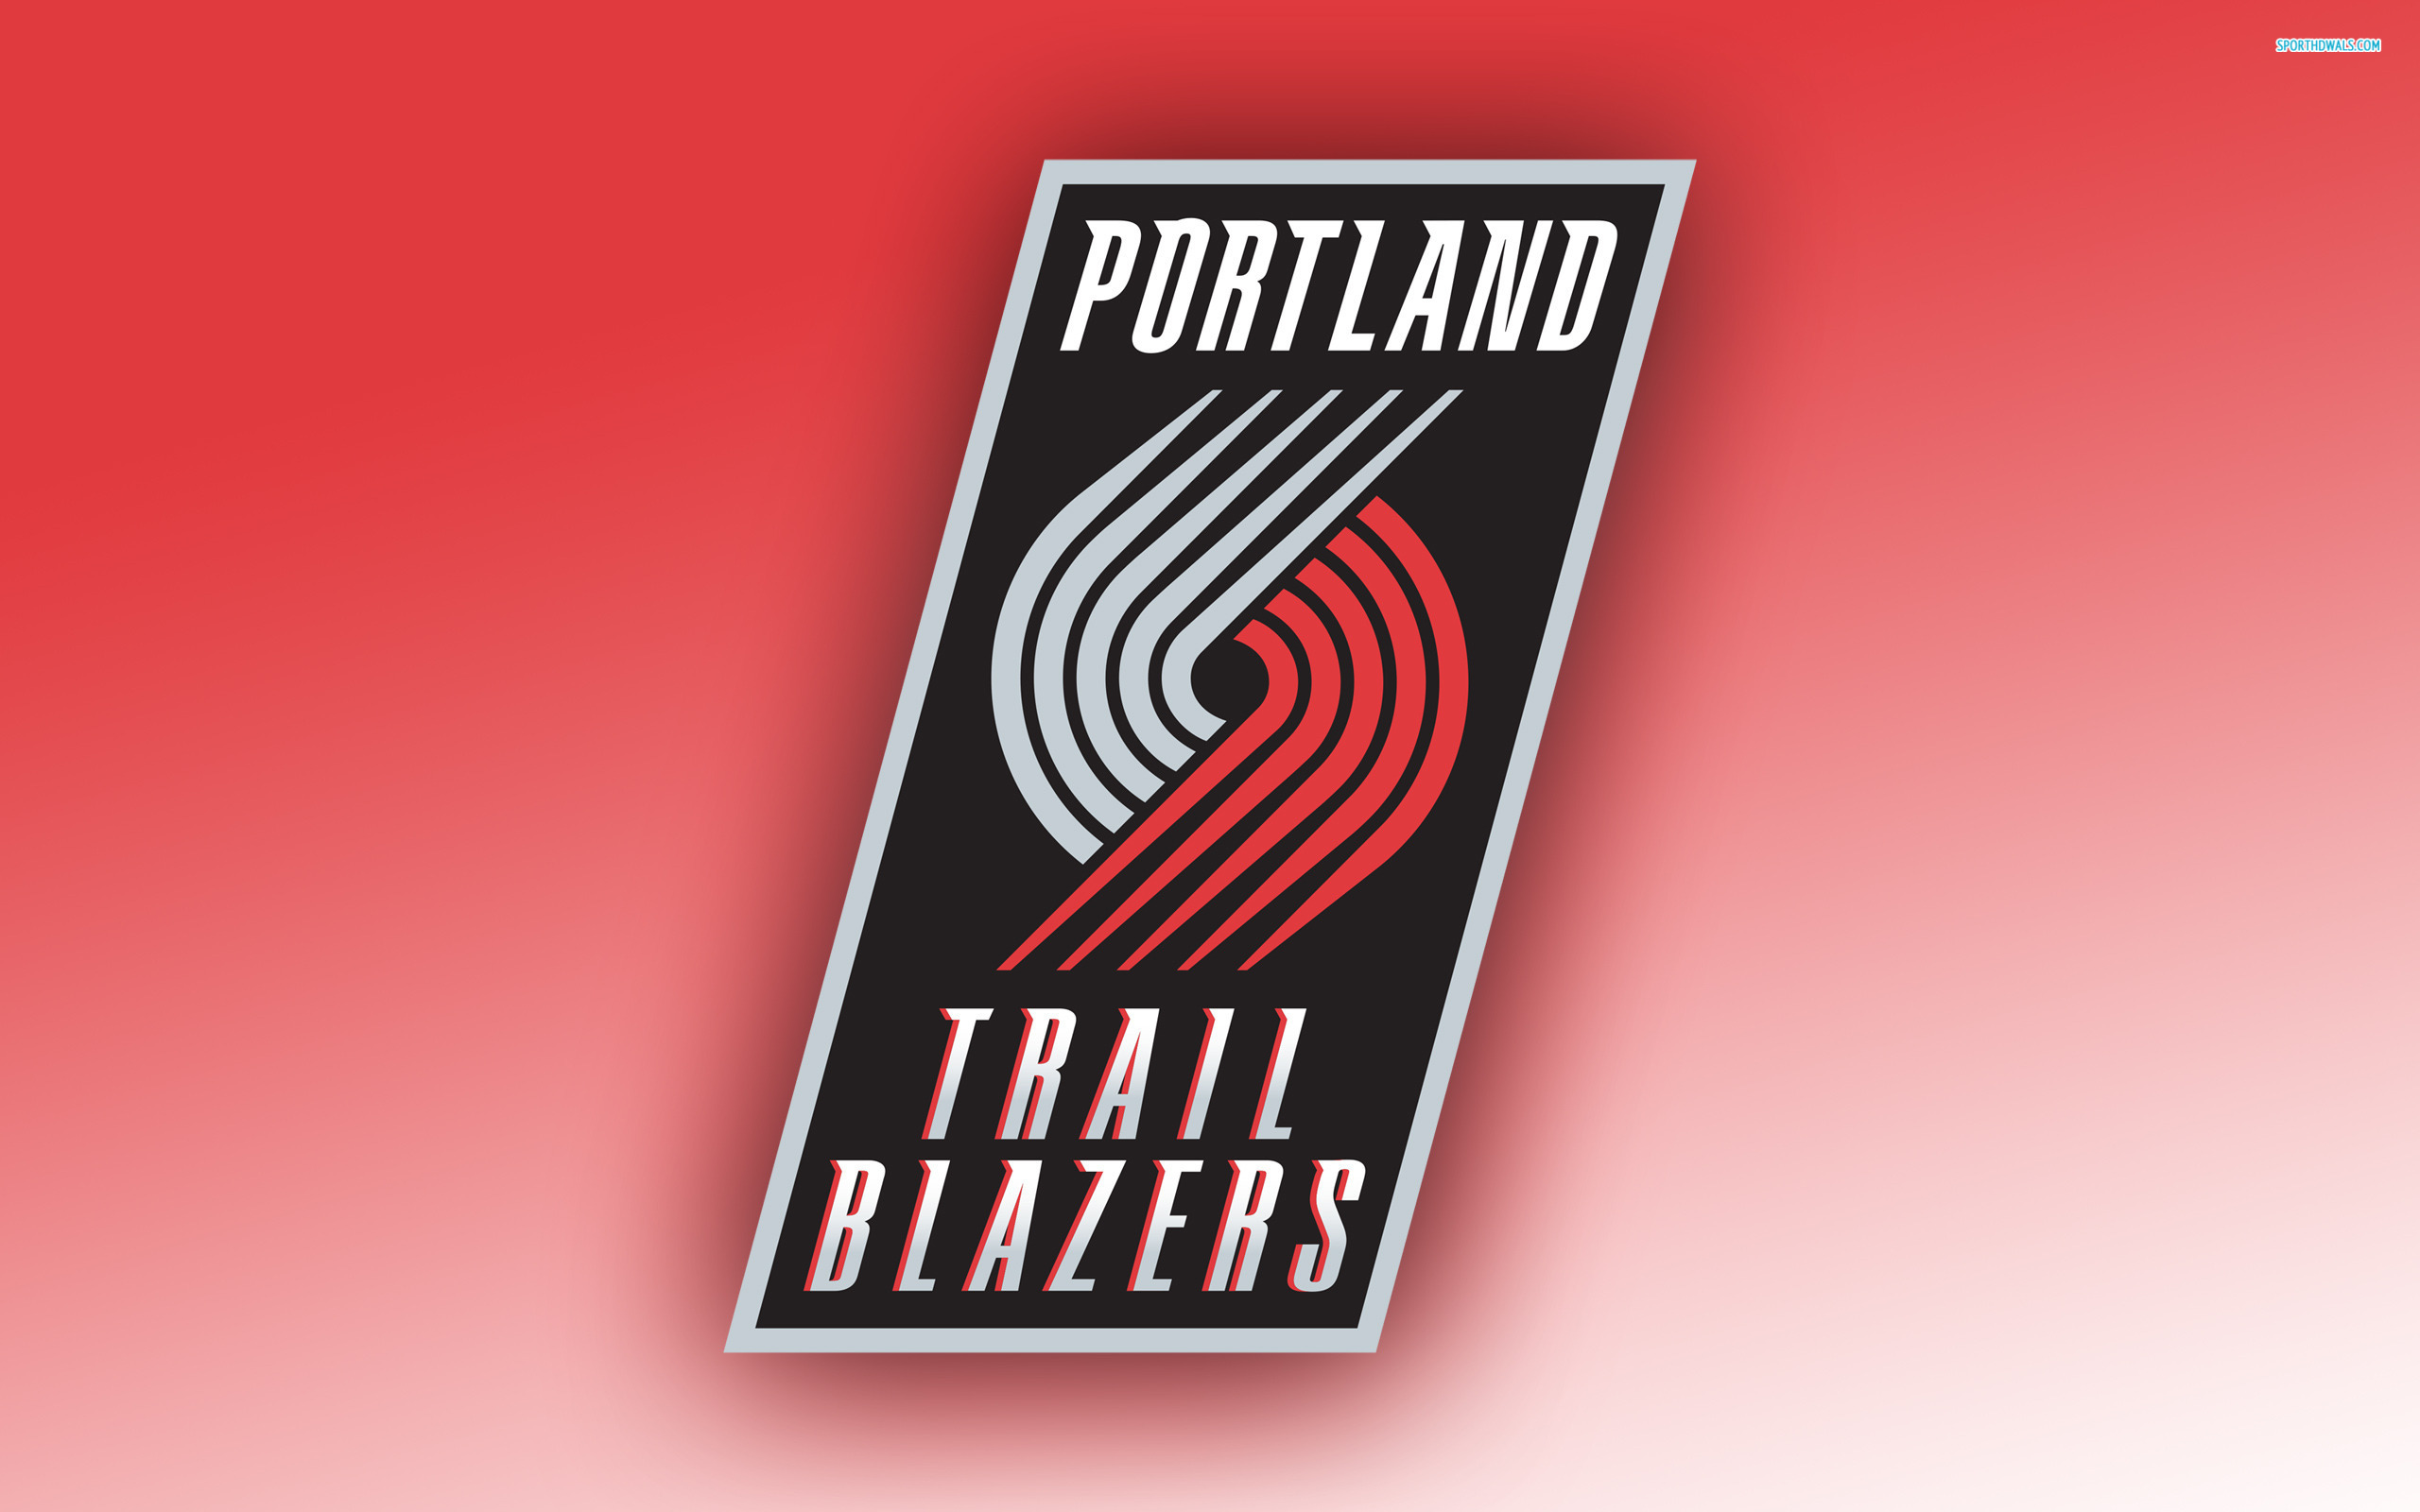 Portland Trailblazers wallpaper